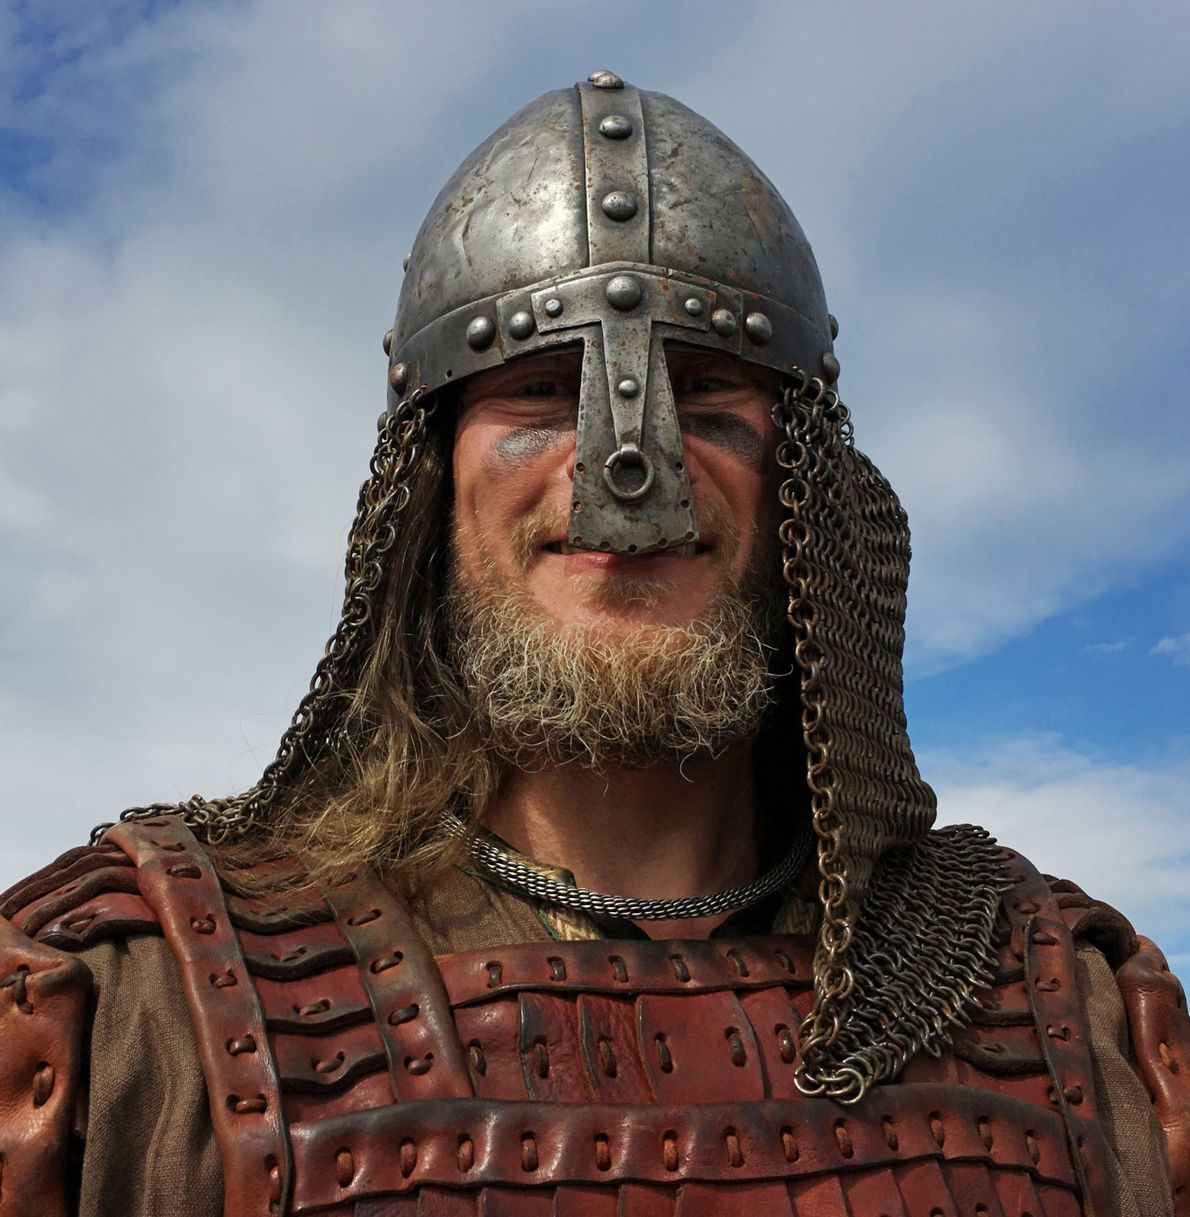 Concealed in iron helmets, chain mail, and leather cuirasses, Viking reenactors make a formidable impression, revealing ...